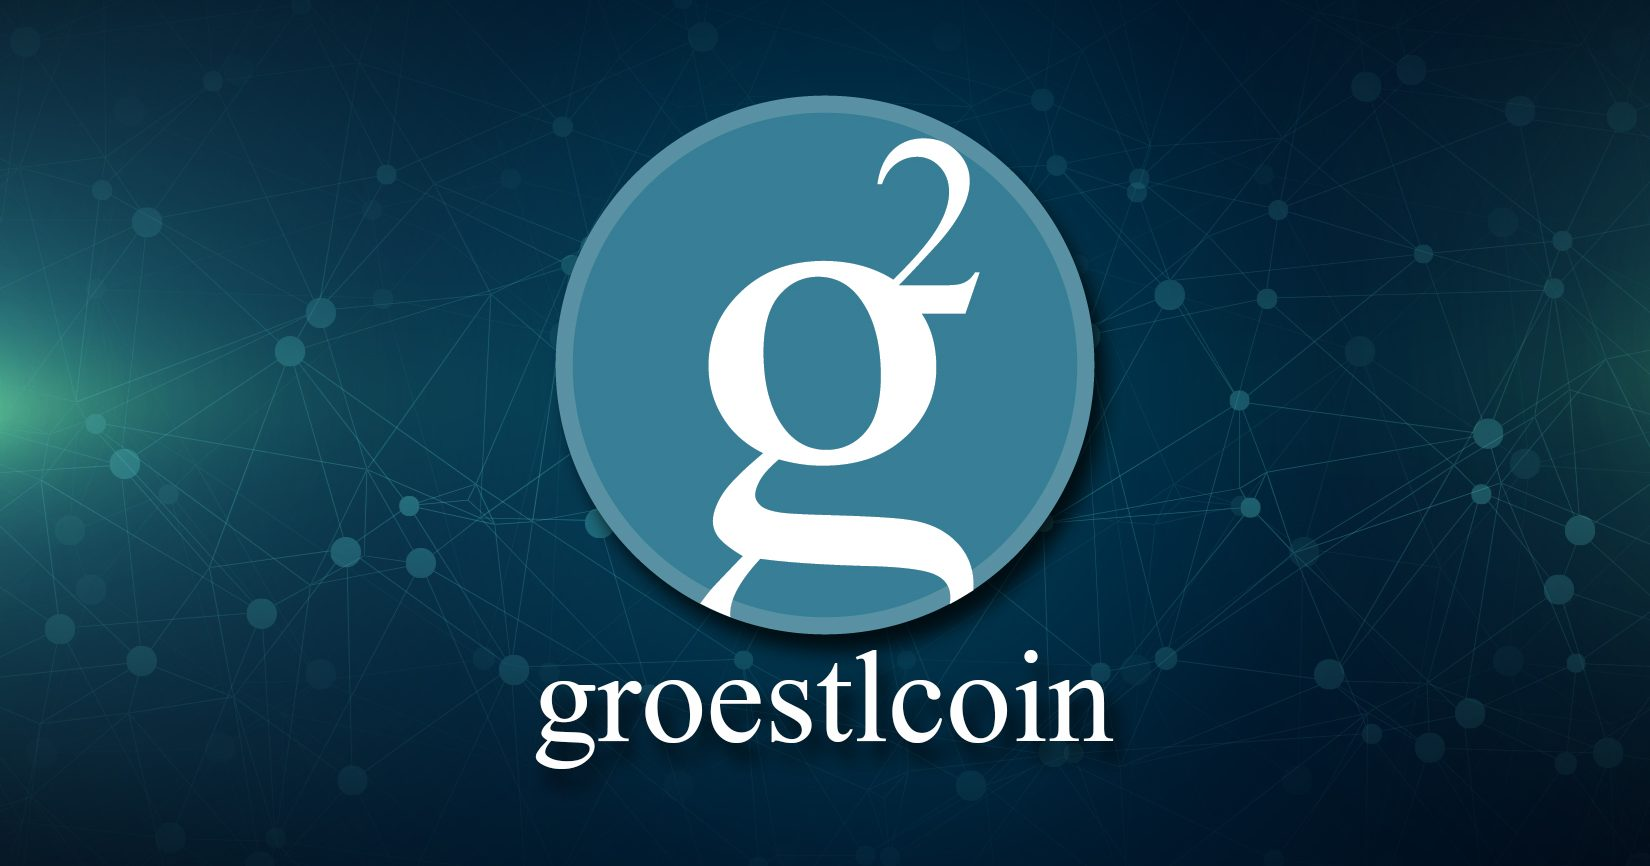 WebWallet released Privacy oriented • Groestlcoin (GRS)